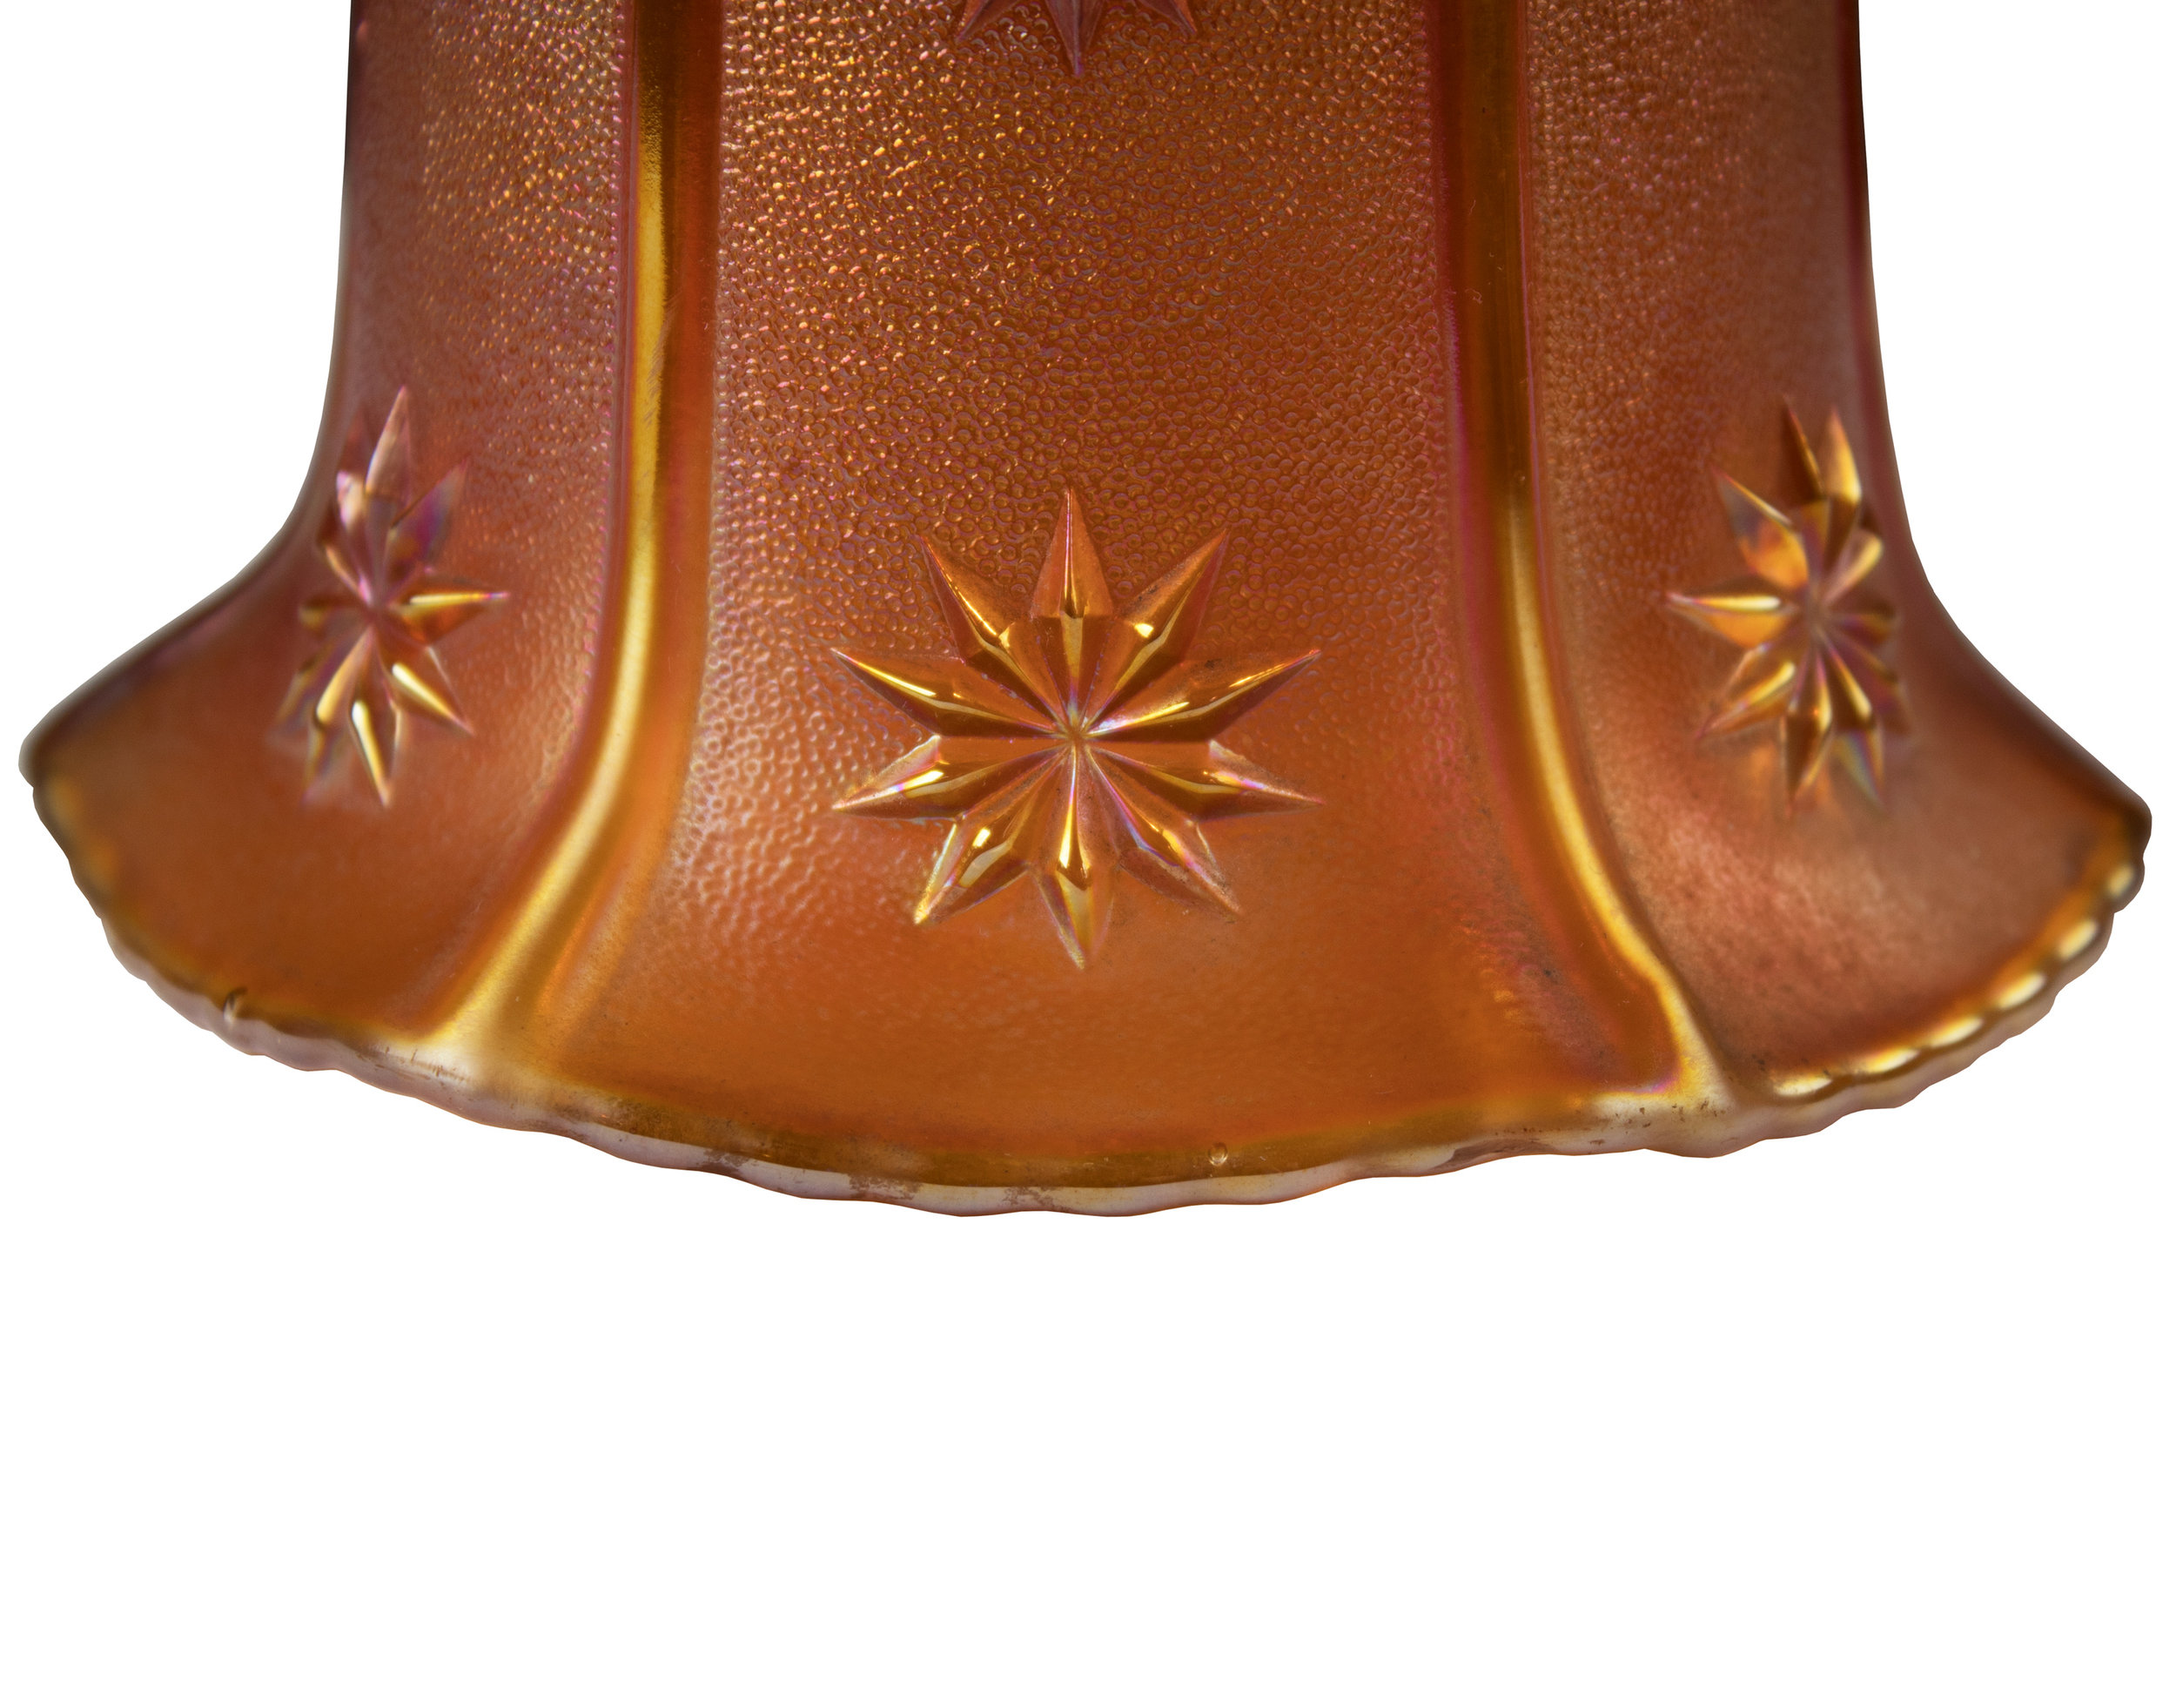 S1070-Amber-Carnival-Glass-with-Stars-detail.jpg